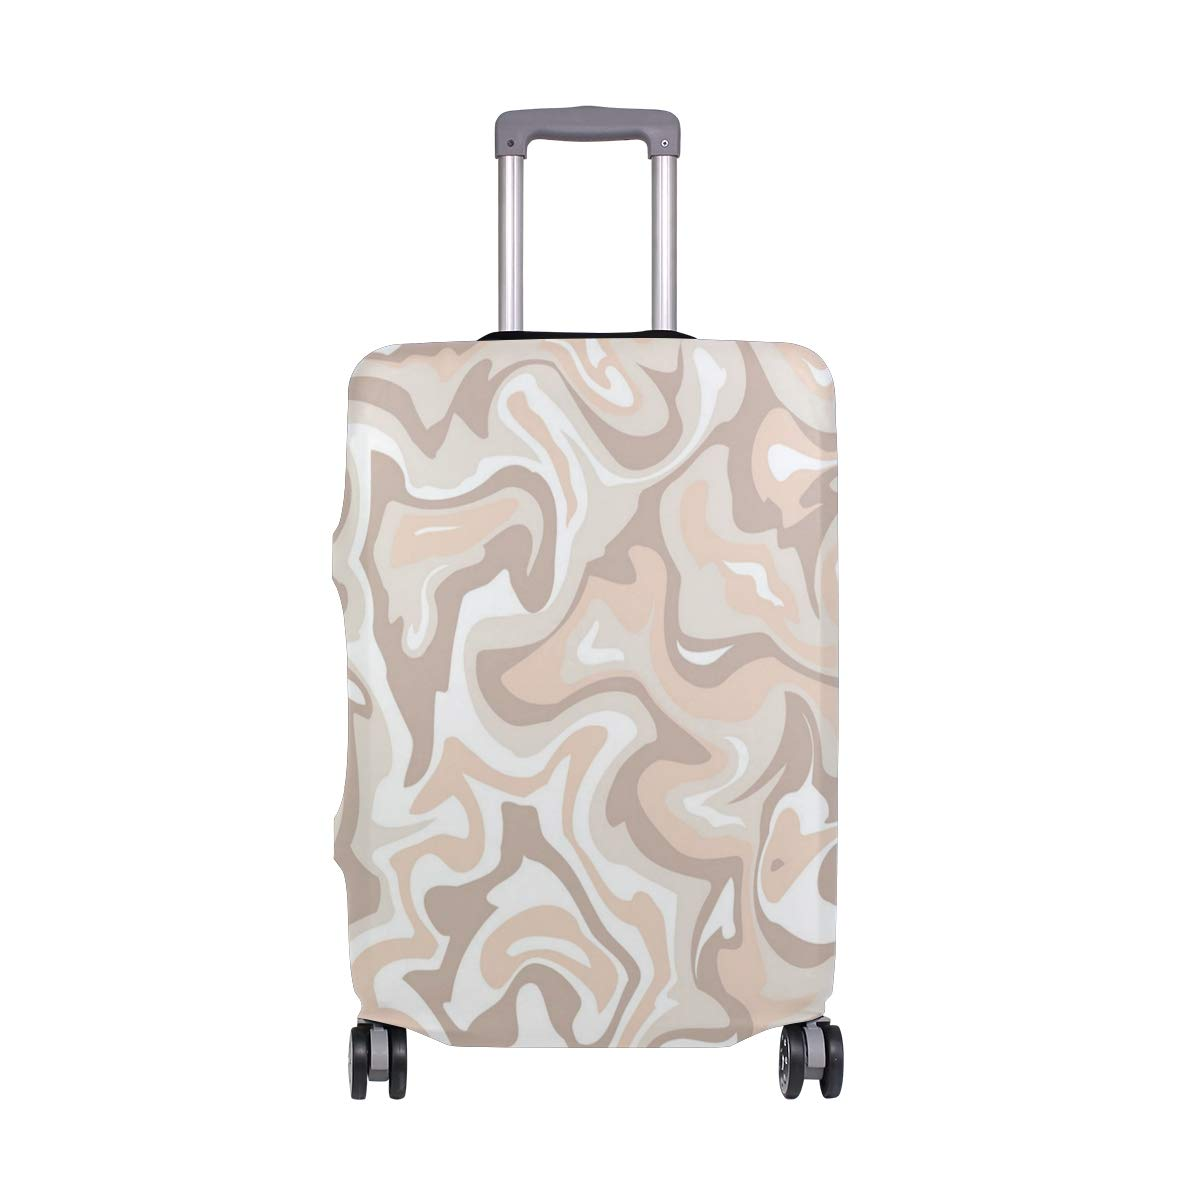 Light Pink Marble Pattern Traveler Lightweight Rotating Luggage Cover Can Carry With You Can Expand Travel Bag Trolley Rolling Luggage Cover